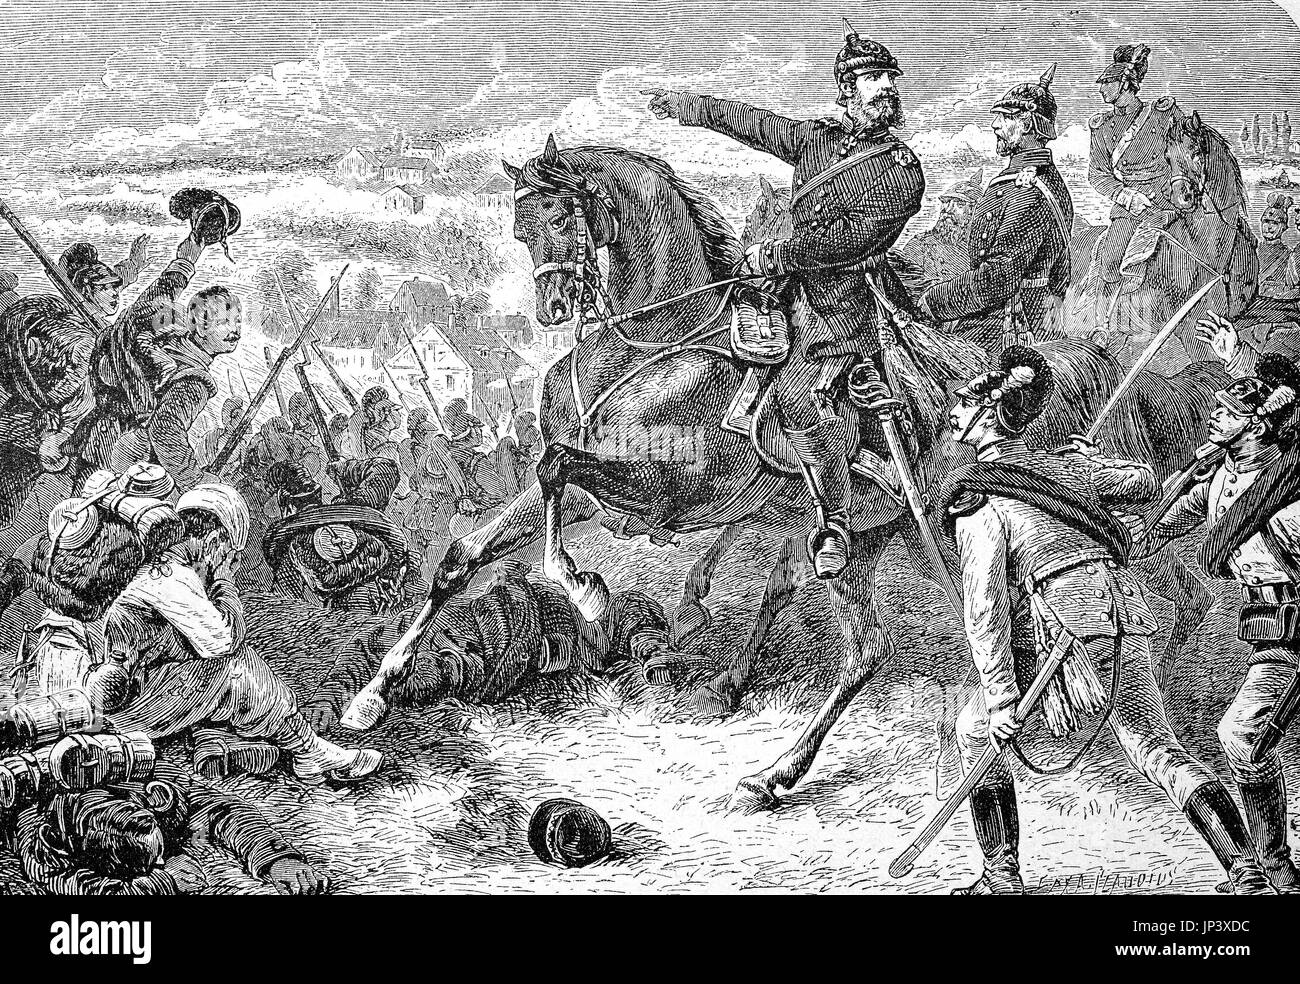 The Crown Prince in the Battle of Woerth on 6 August 1870, also known as the Battle of Reichshoffen or as the Battle Stock Photo